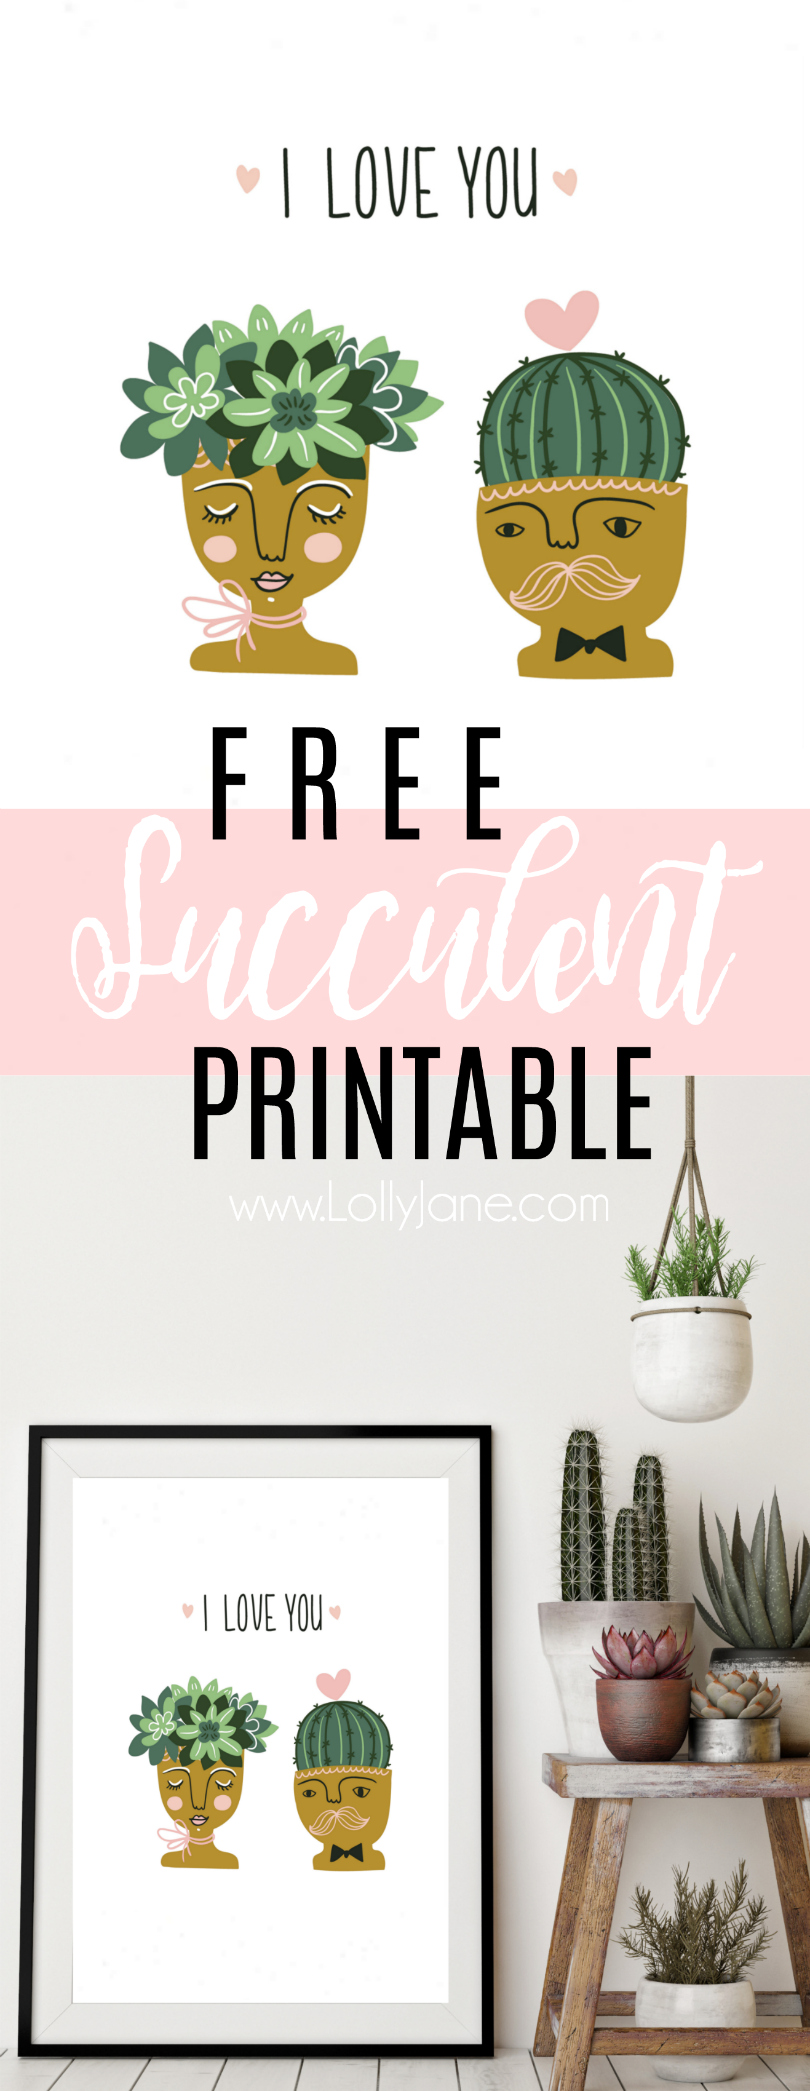 Such a cute FREE printable!! Adore this fun succulent printable! Fun I love you digital download. Love this succulent printable home decor!!